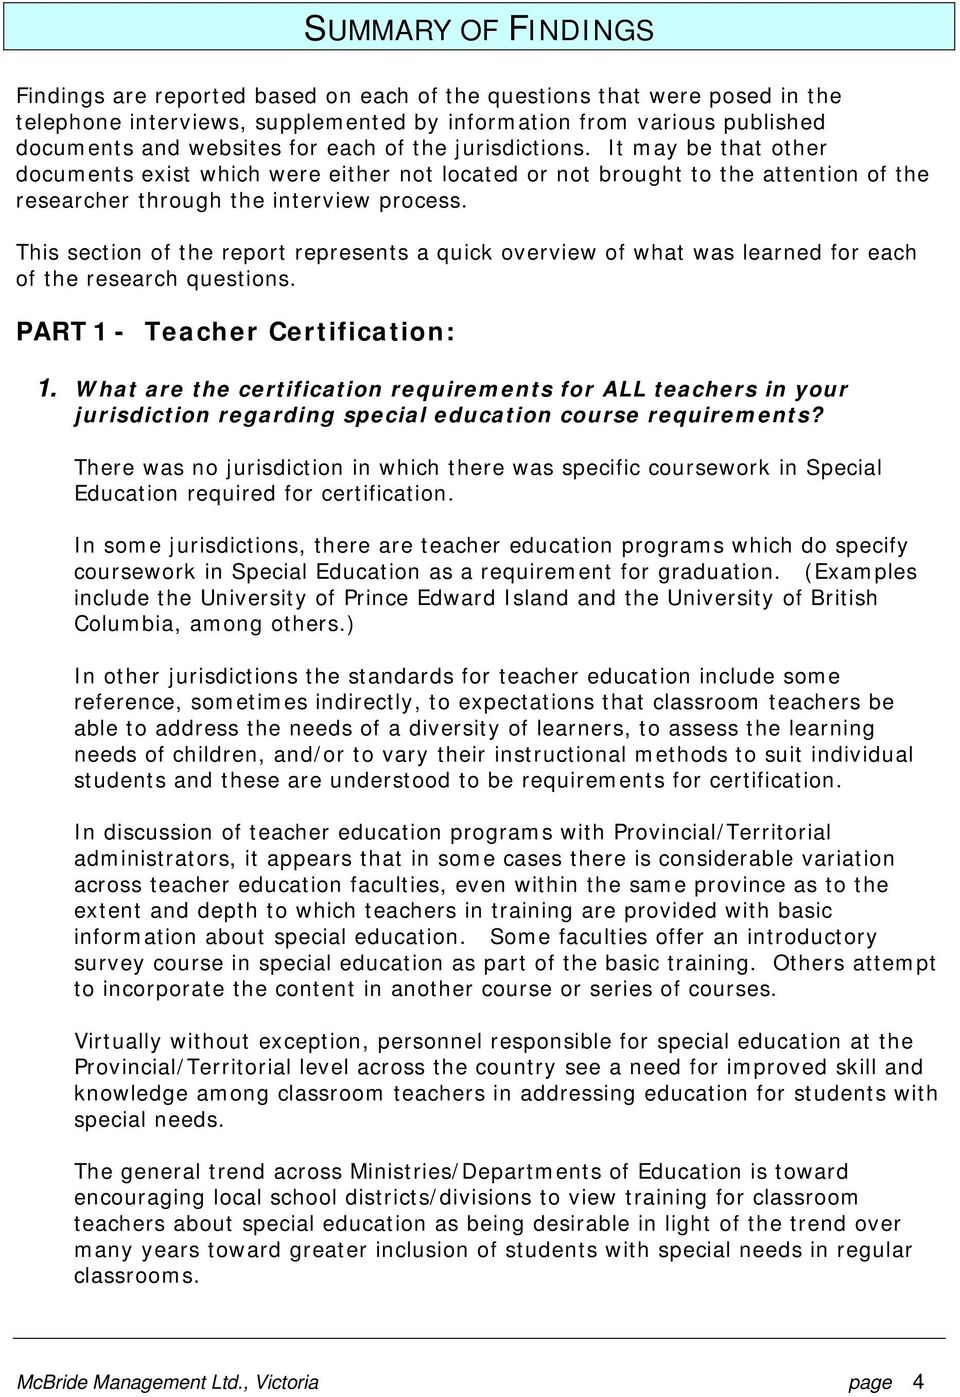 This section of the report represents a quick overview of what was learned for each of the research questions. PART 1 - Teacher Certification: 1.